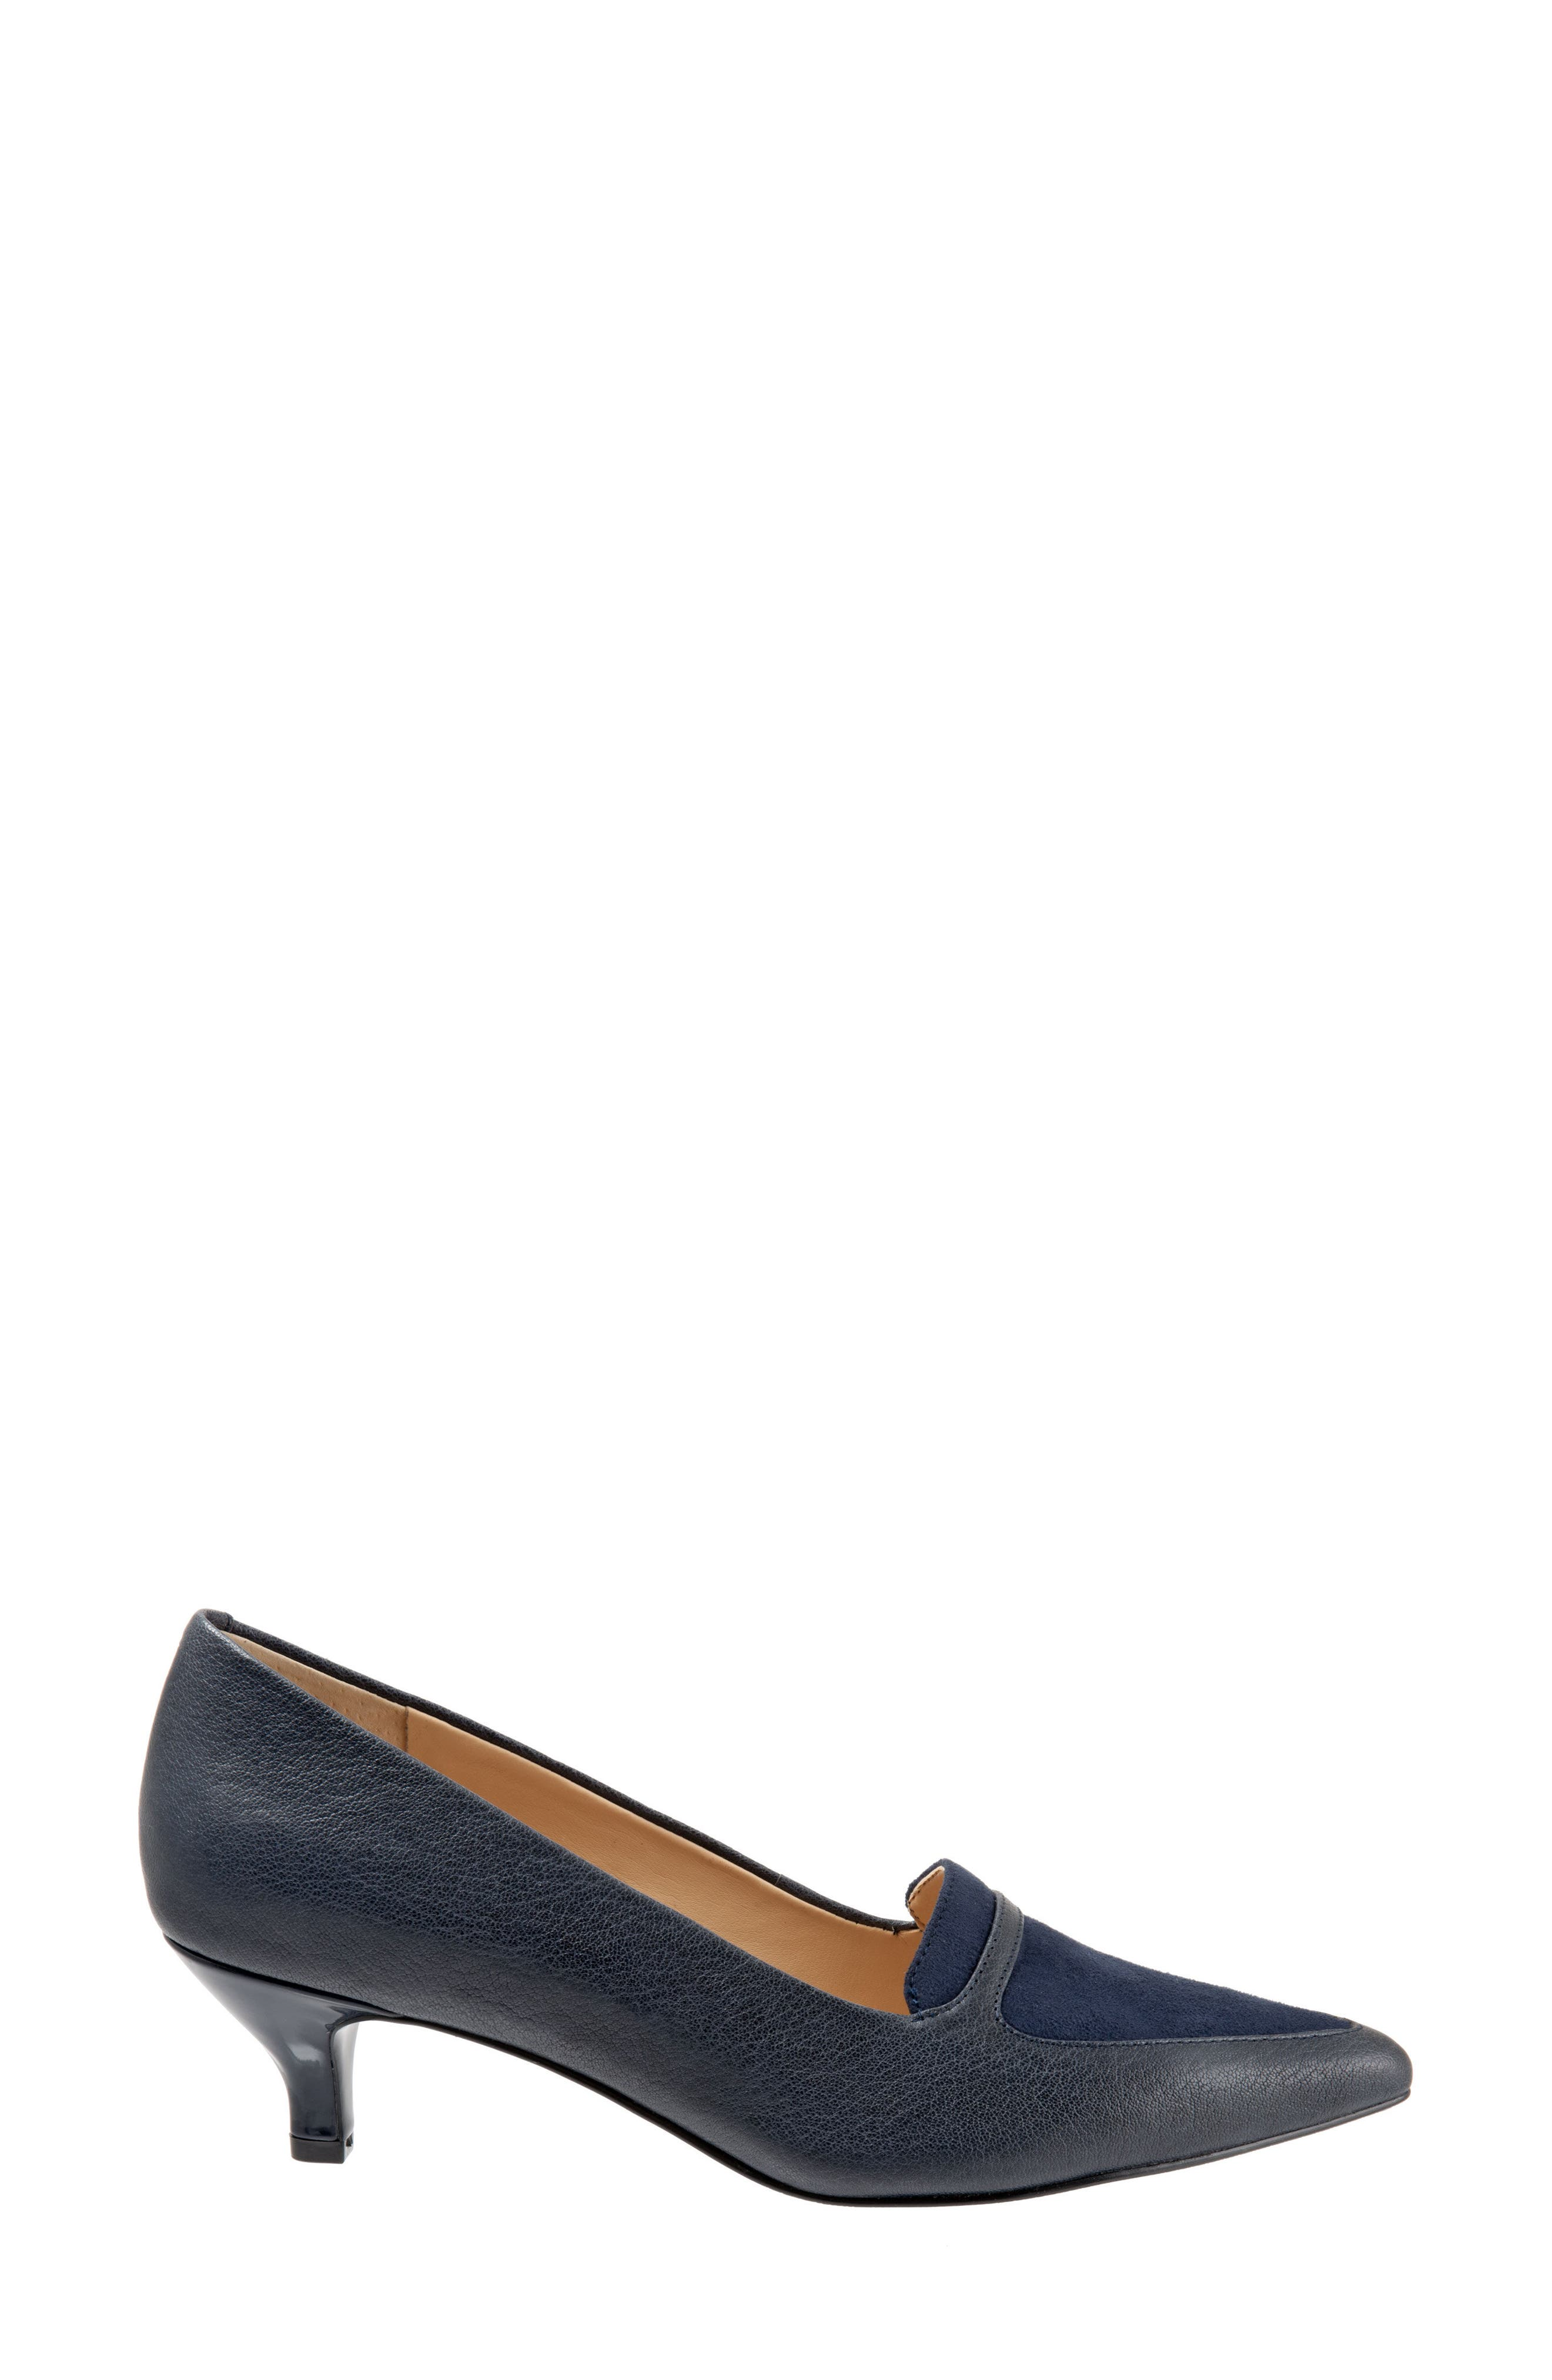 'Piper' Pointy Toe Pump,                             Alternate thumbnail 19, color,